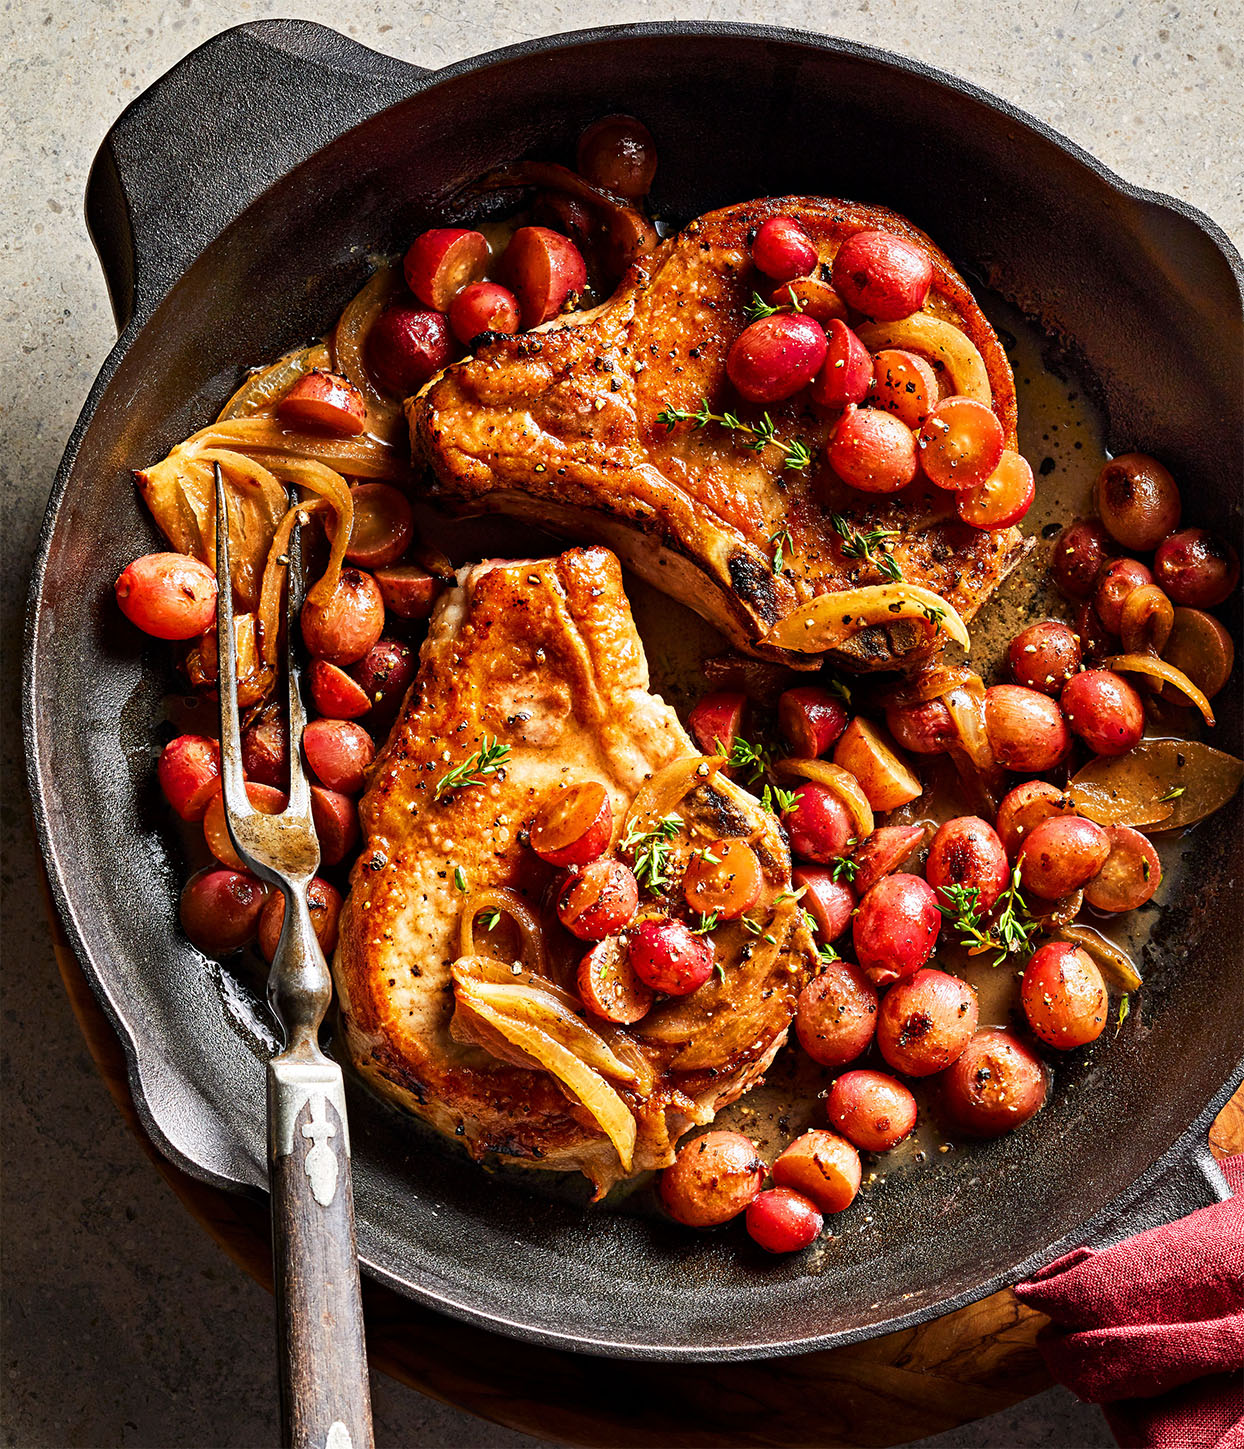 Pork Chops with Grapes and Onions